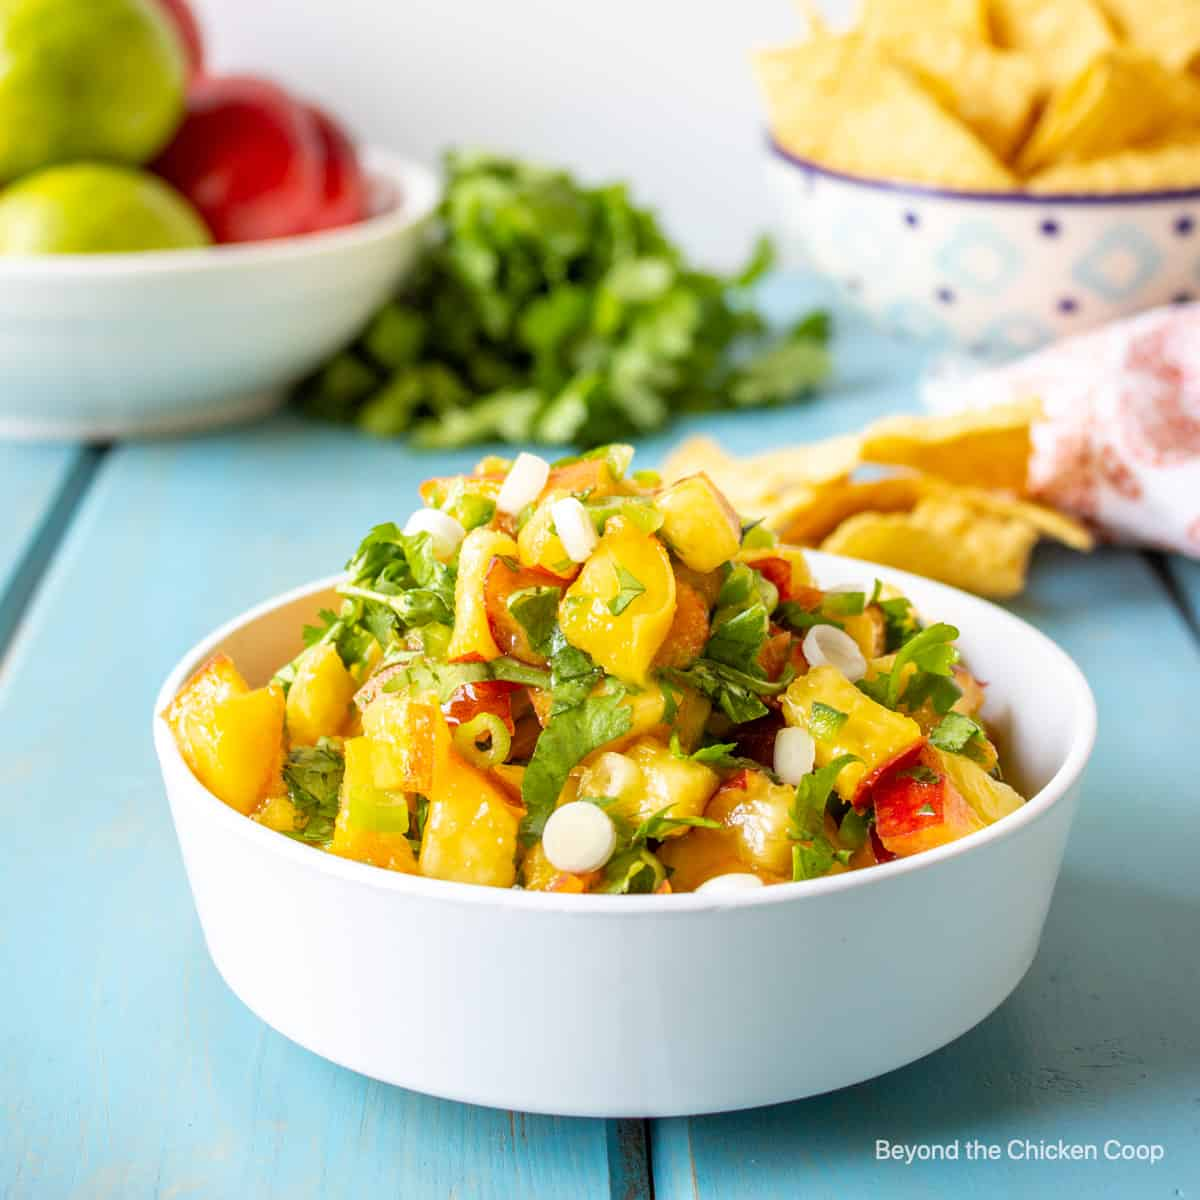 A bowl filled with peach salsa.